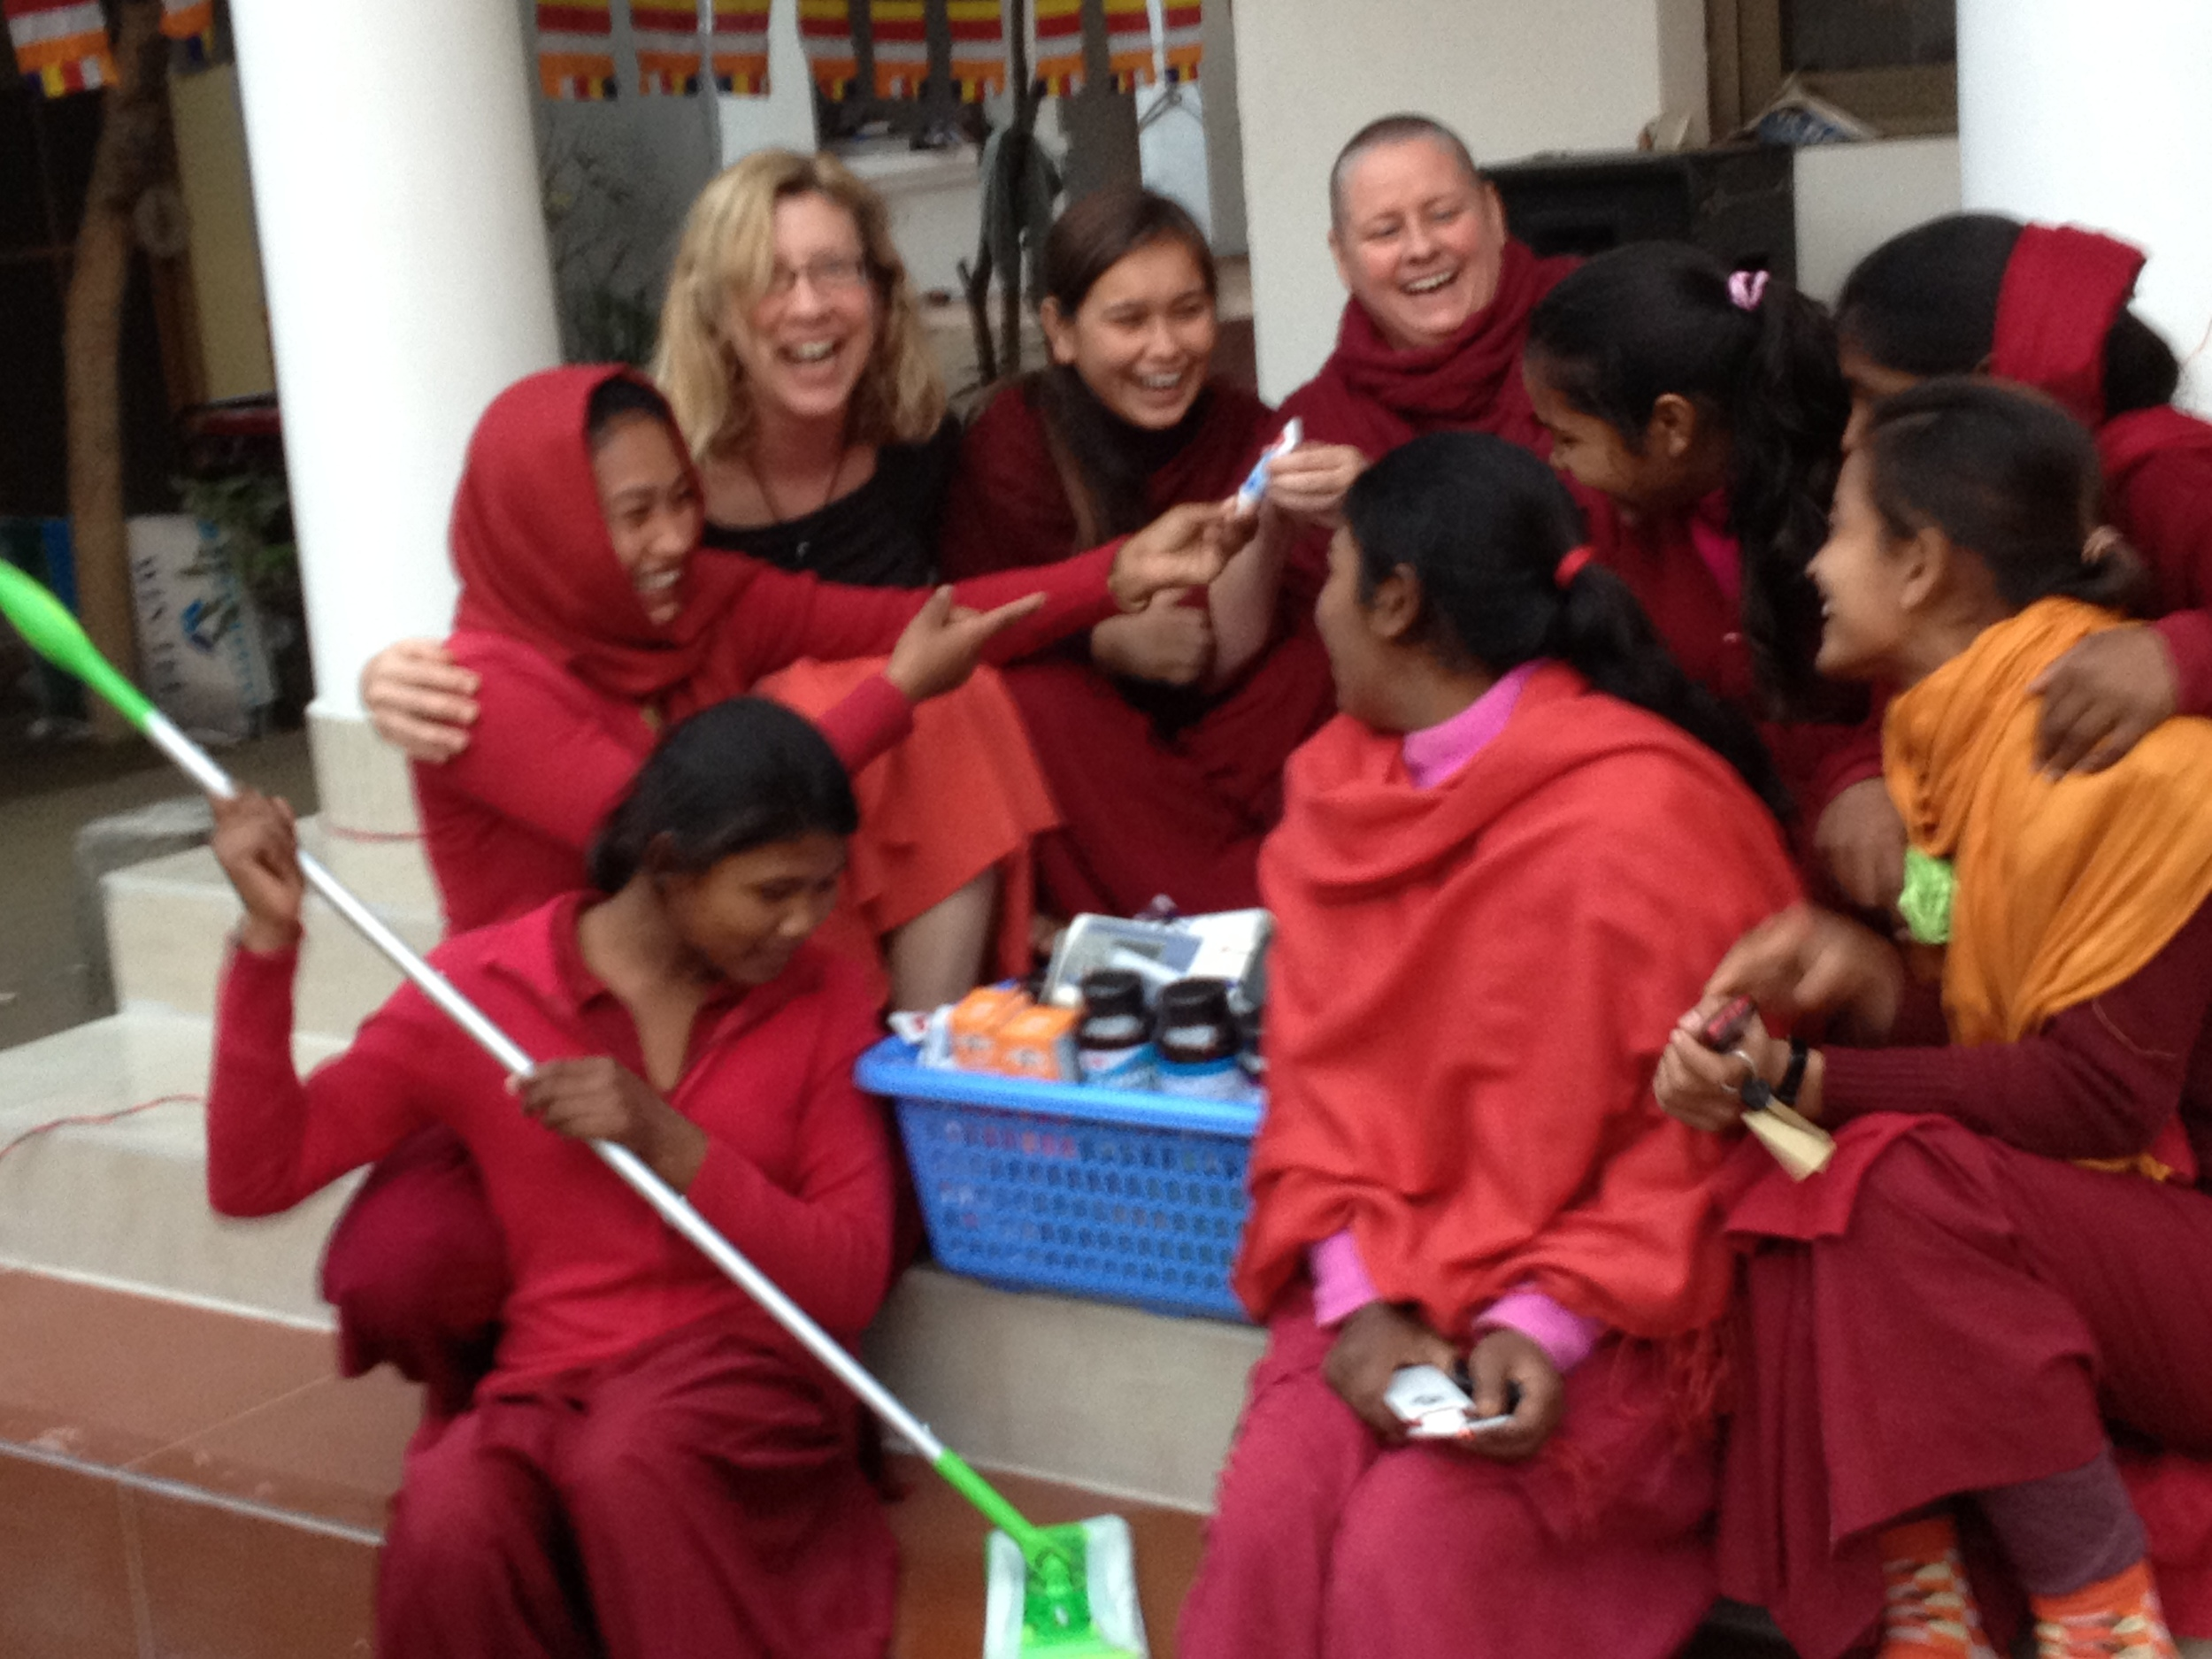 Unpacking cleaning supplies for the Peace Grove Nunnery.  Never would have imagined how much joy those mops gave those girls!